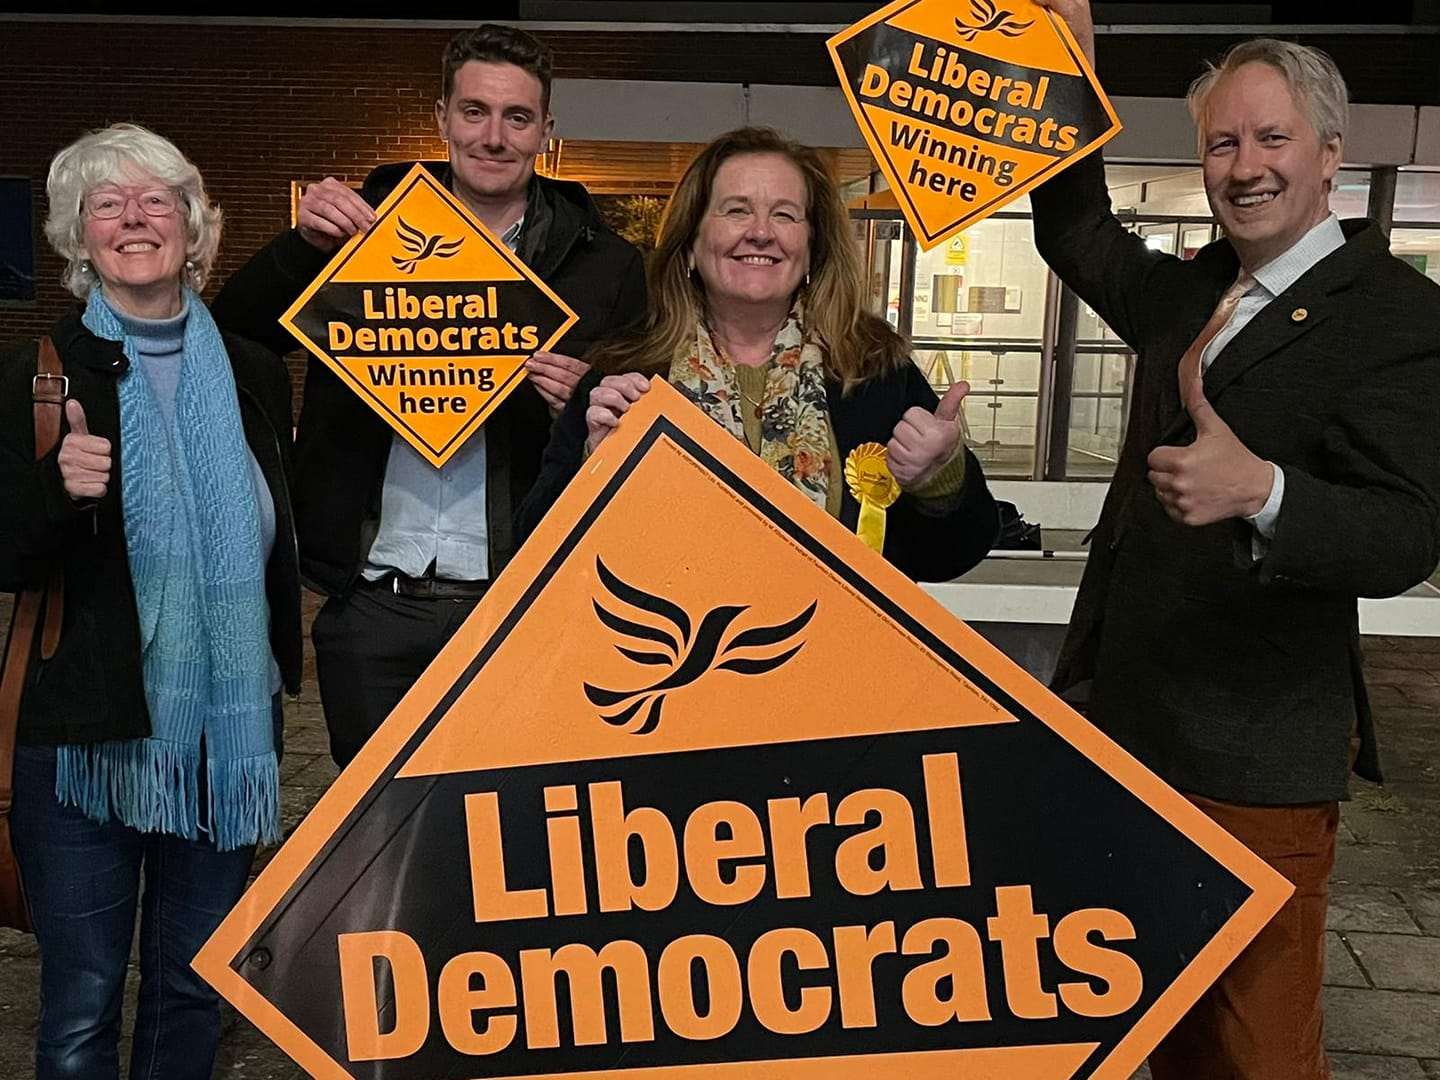 By-election Victory in Trull, Pitminster and Corfe